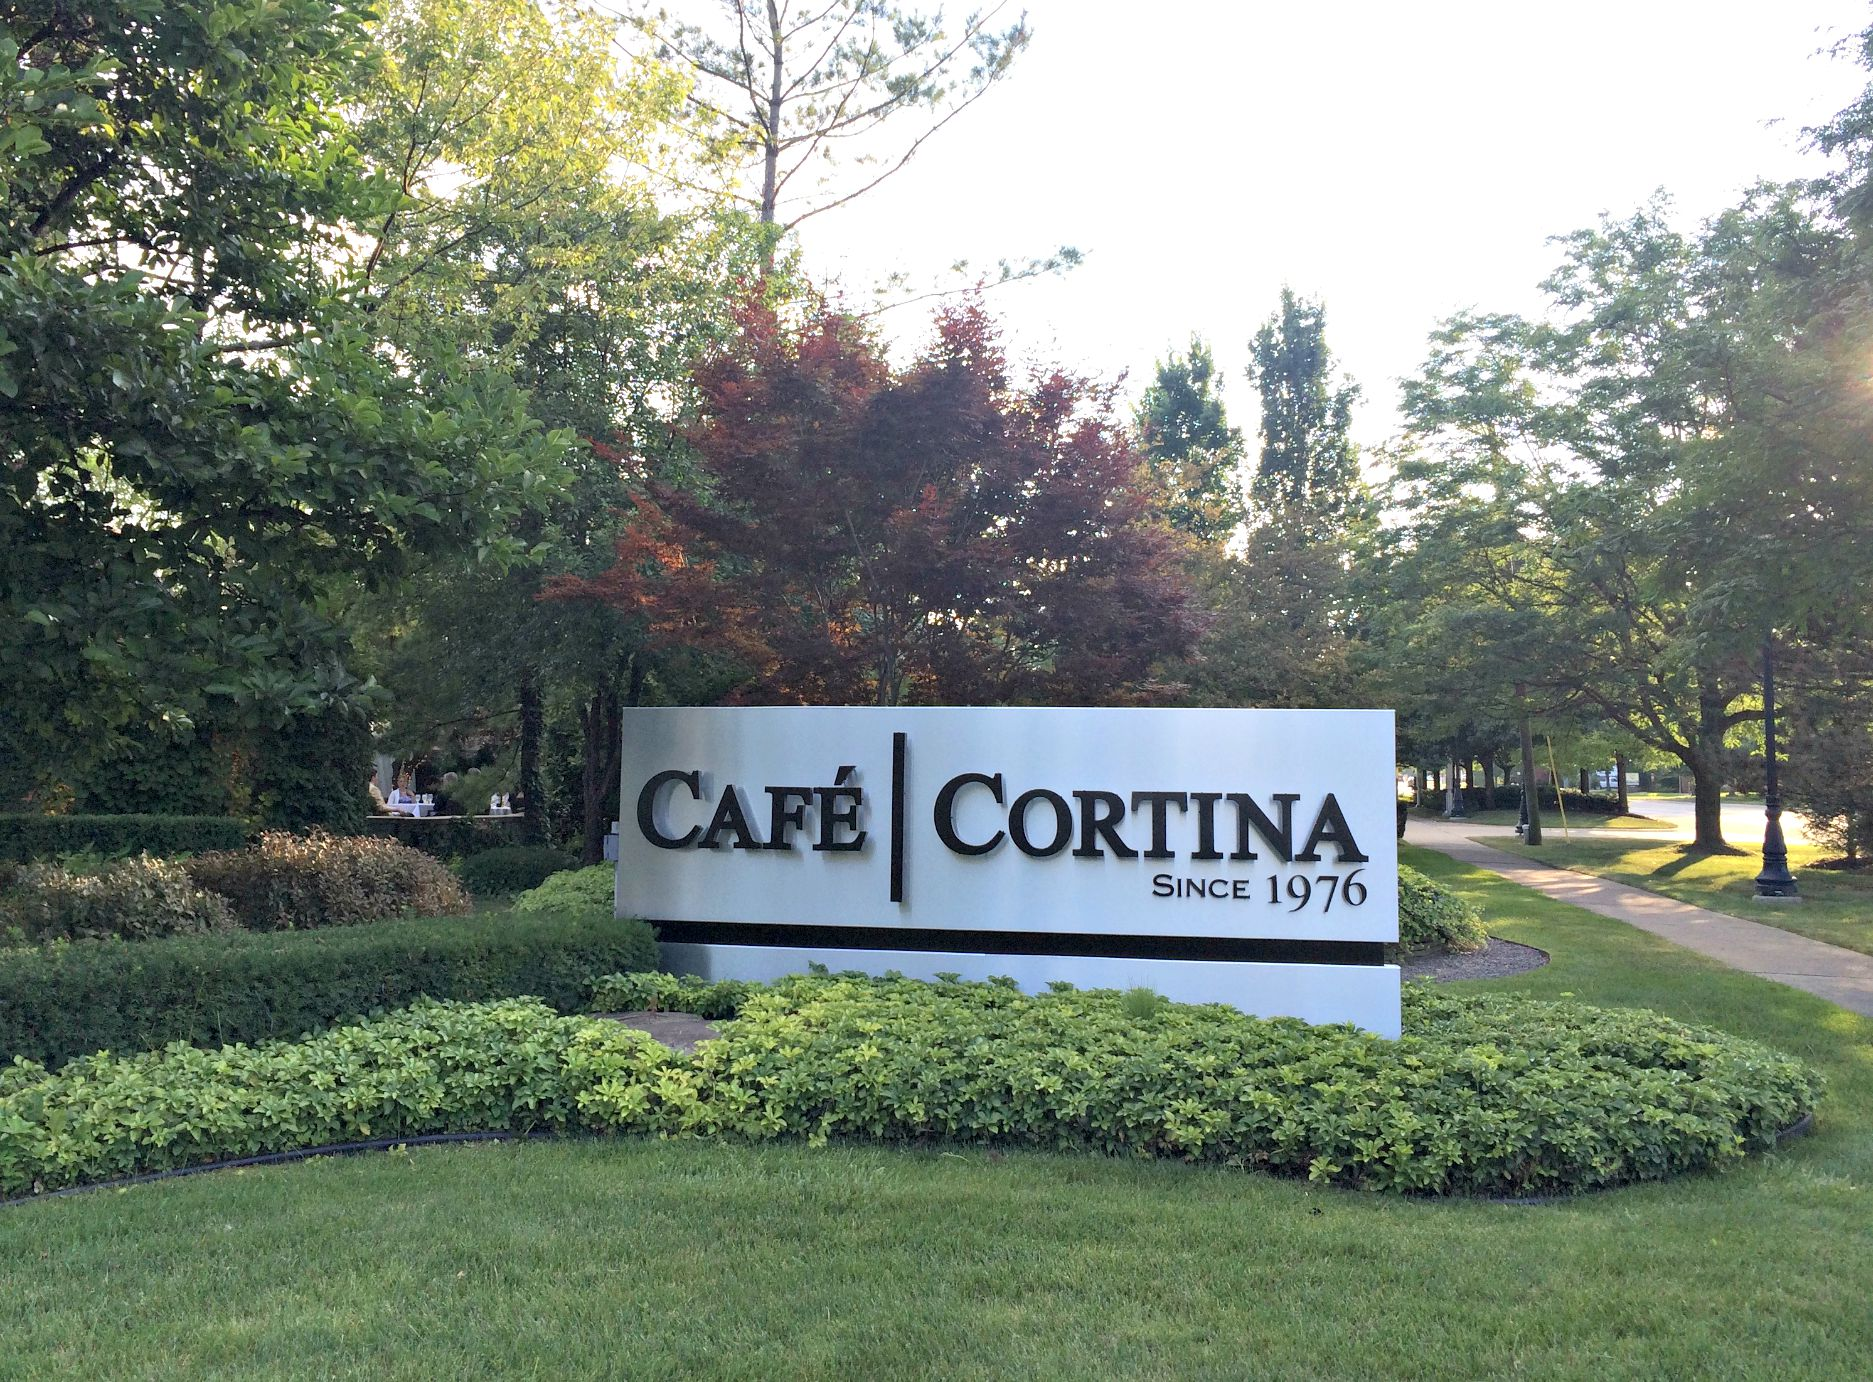 Cafe Cortina Farmington, MI